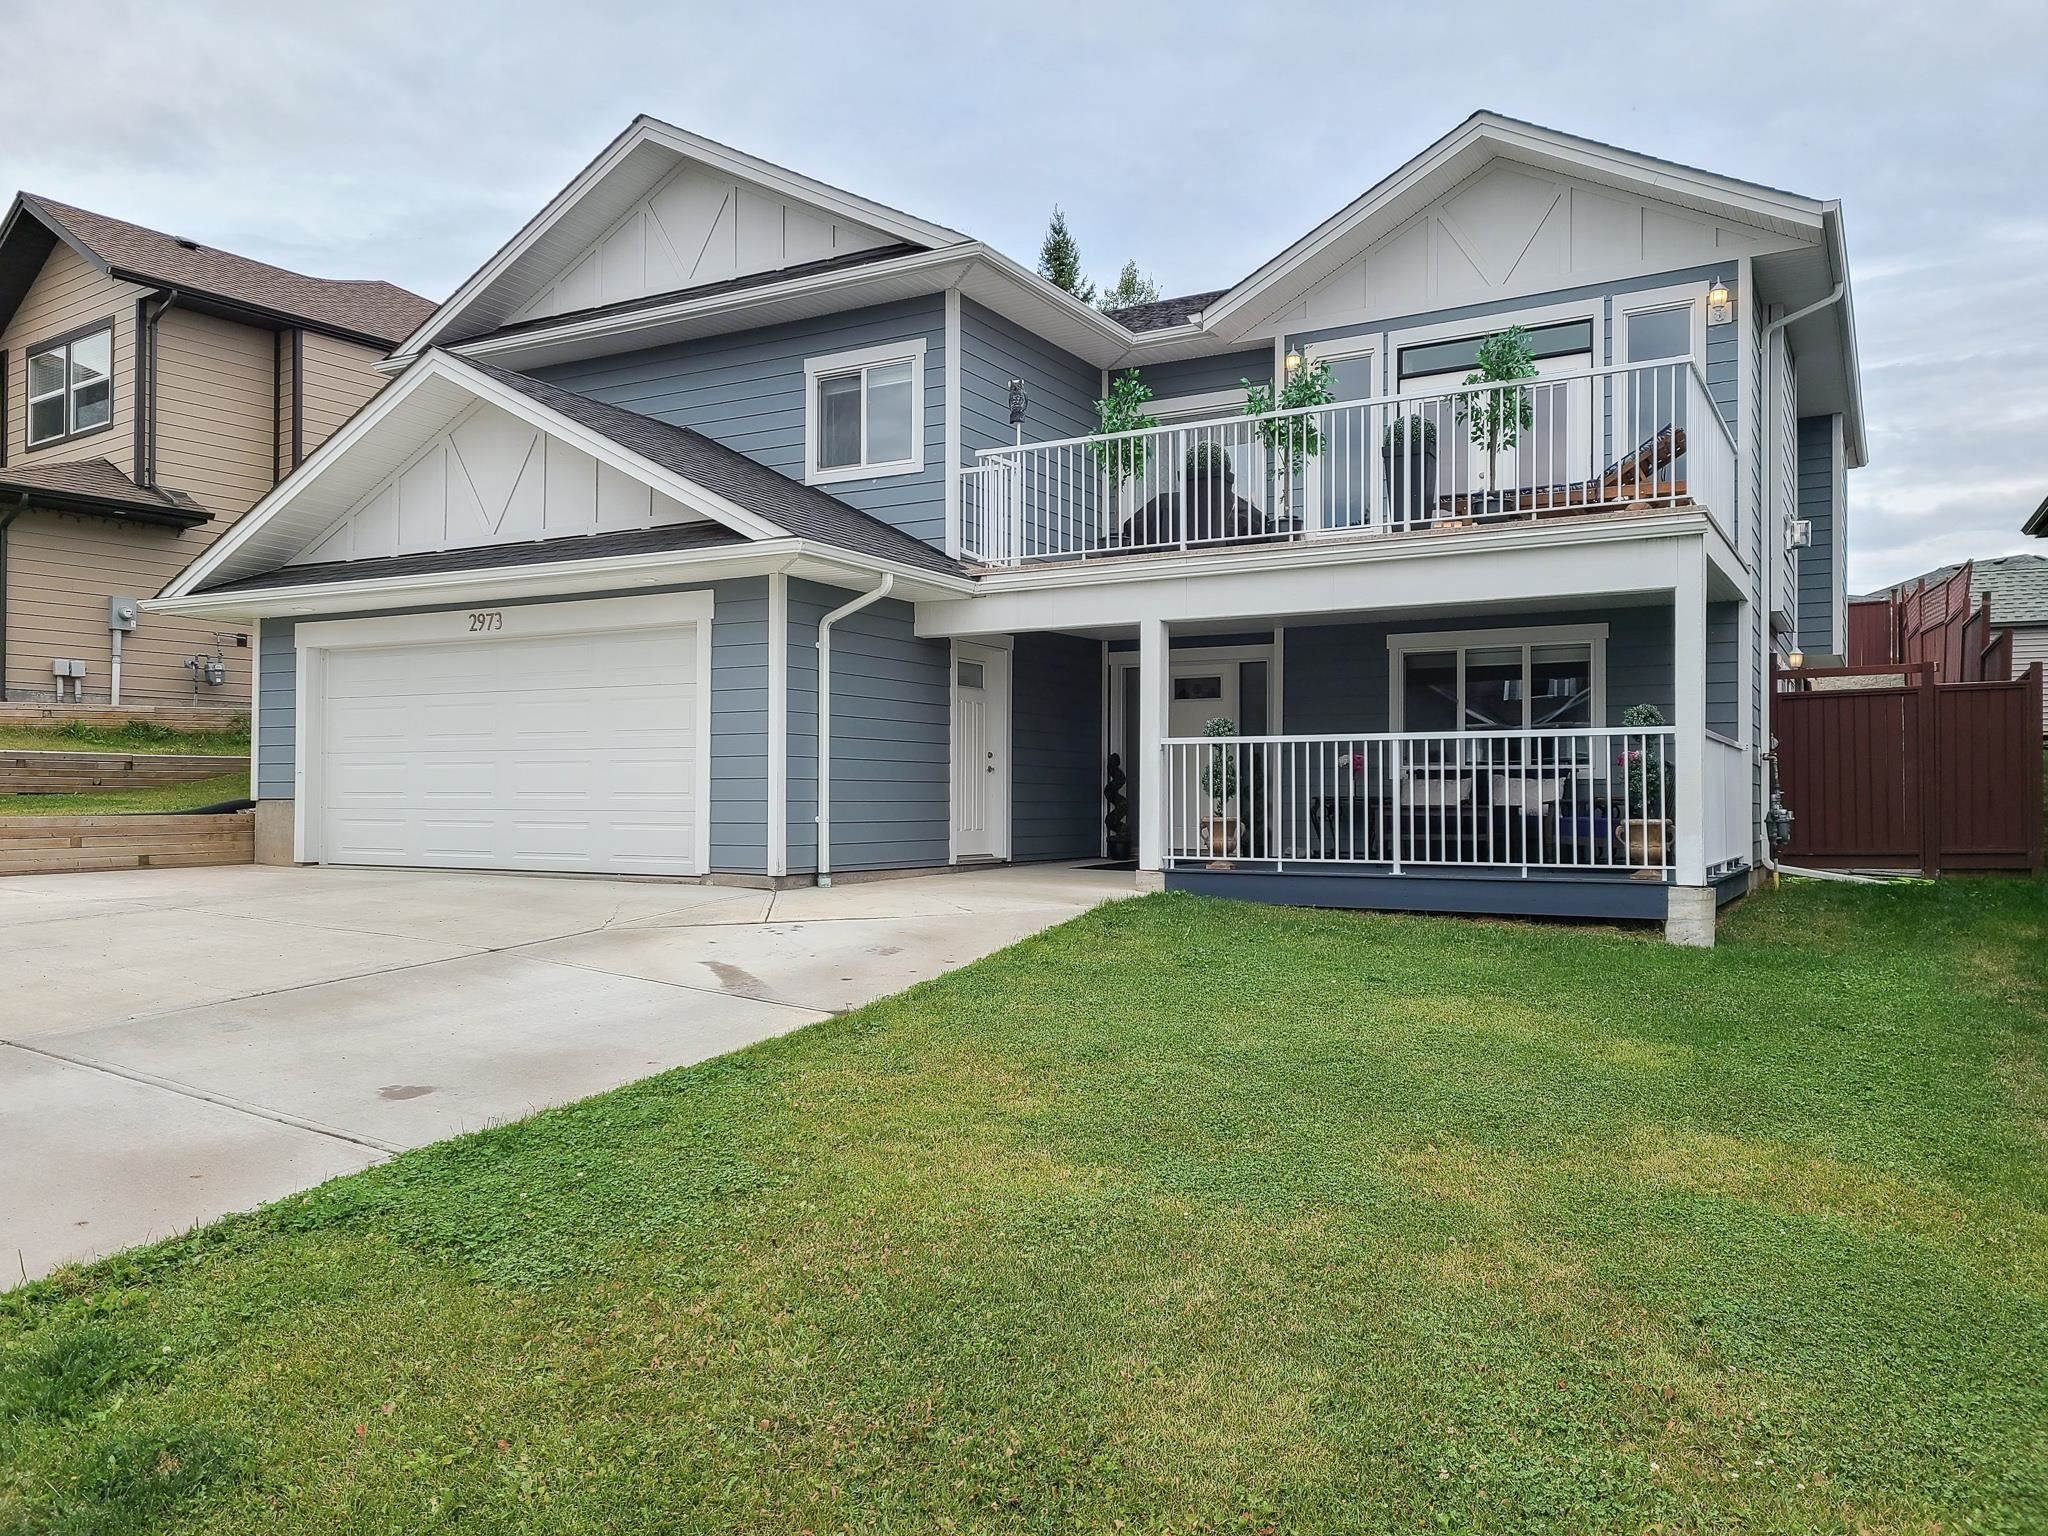 """Main Photo: 2973 VISTA RIDGE Drive in Prince George: St. Lawrence Heights House for sale in """"ST LAWRENCE HEIGHTS"""" (PG City South (Zone 74))  : MLS®# R2616108"""